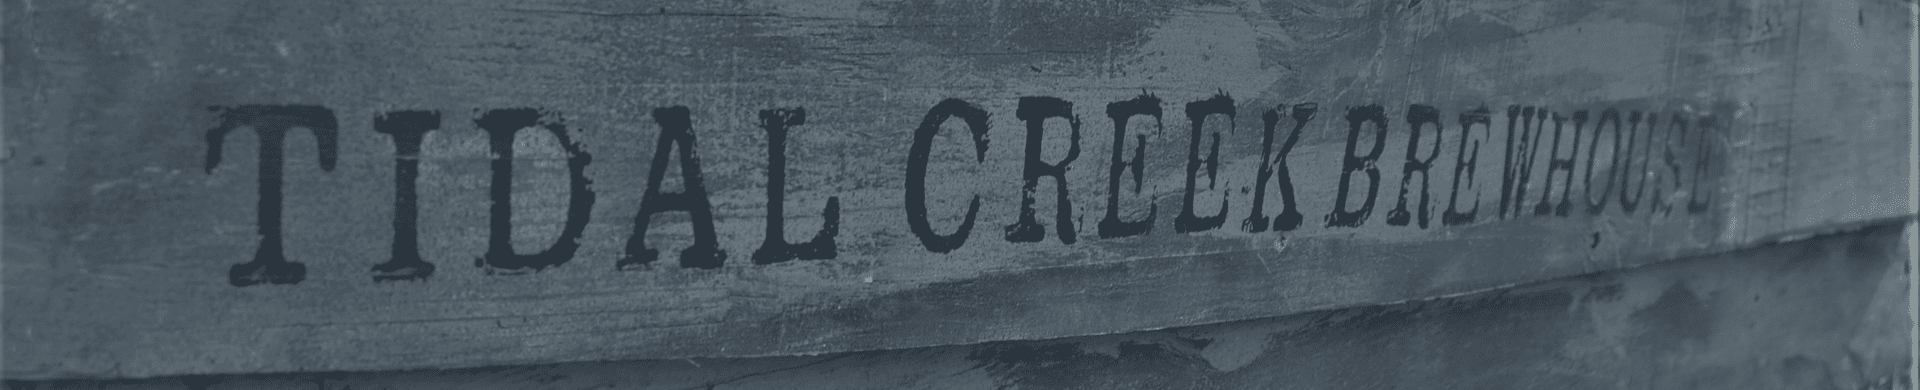 tidal creek brewhouse name on aa boat